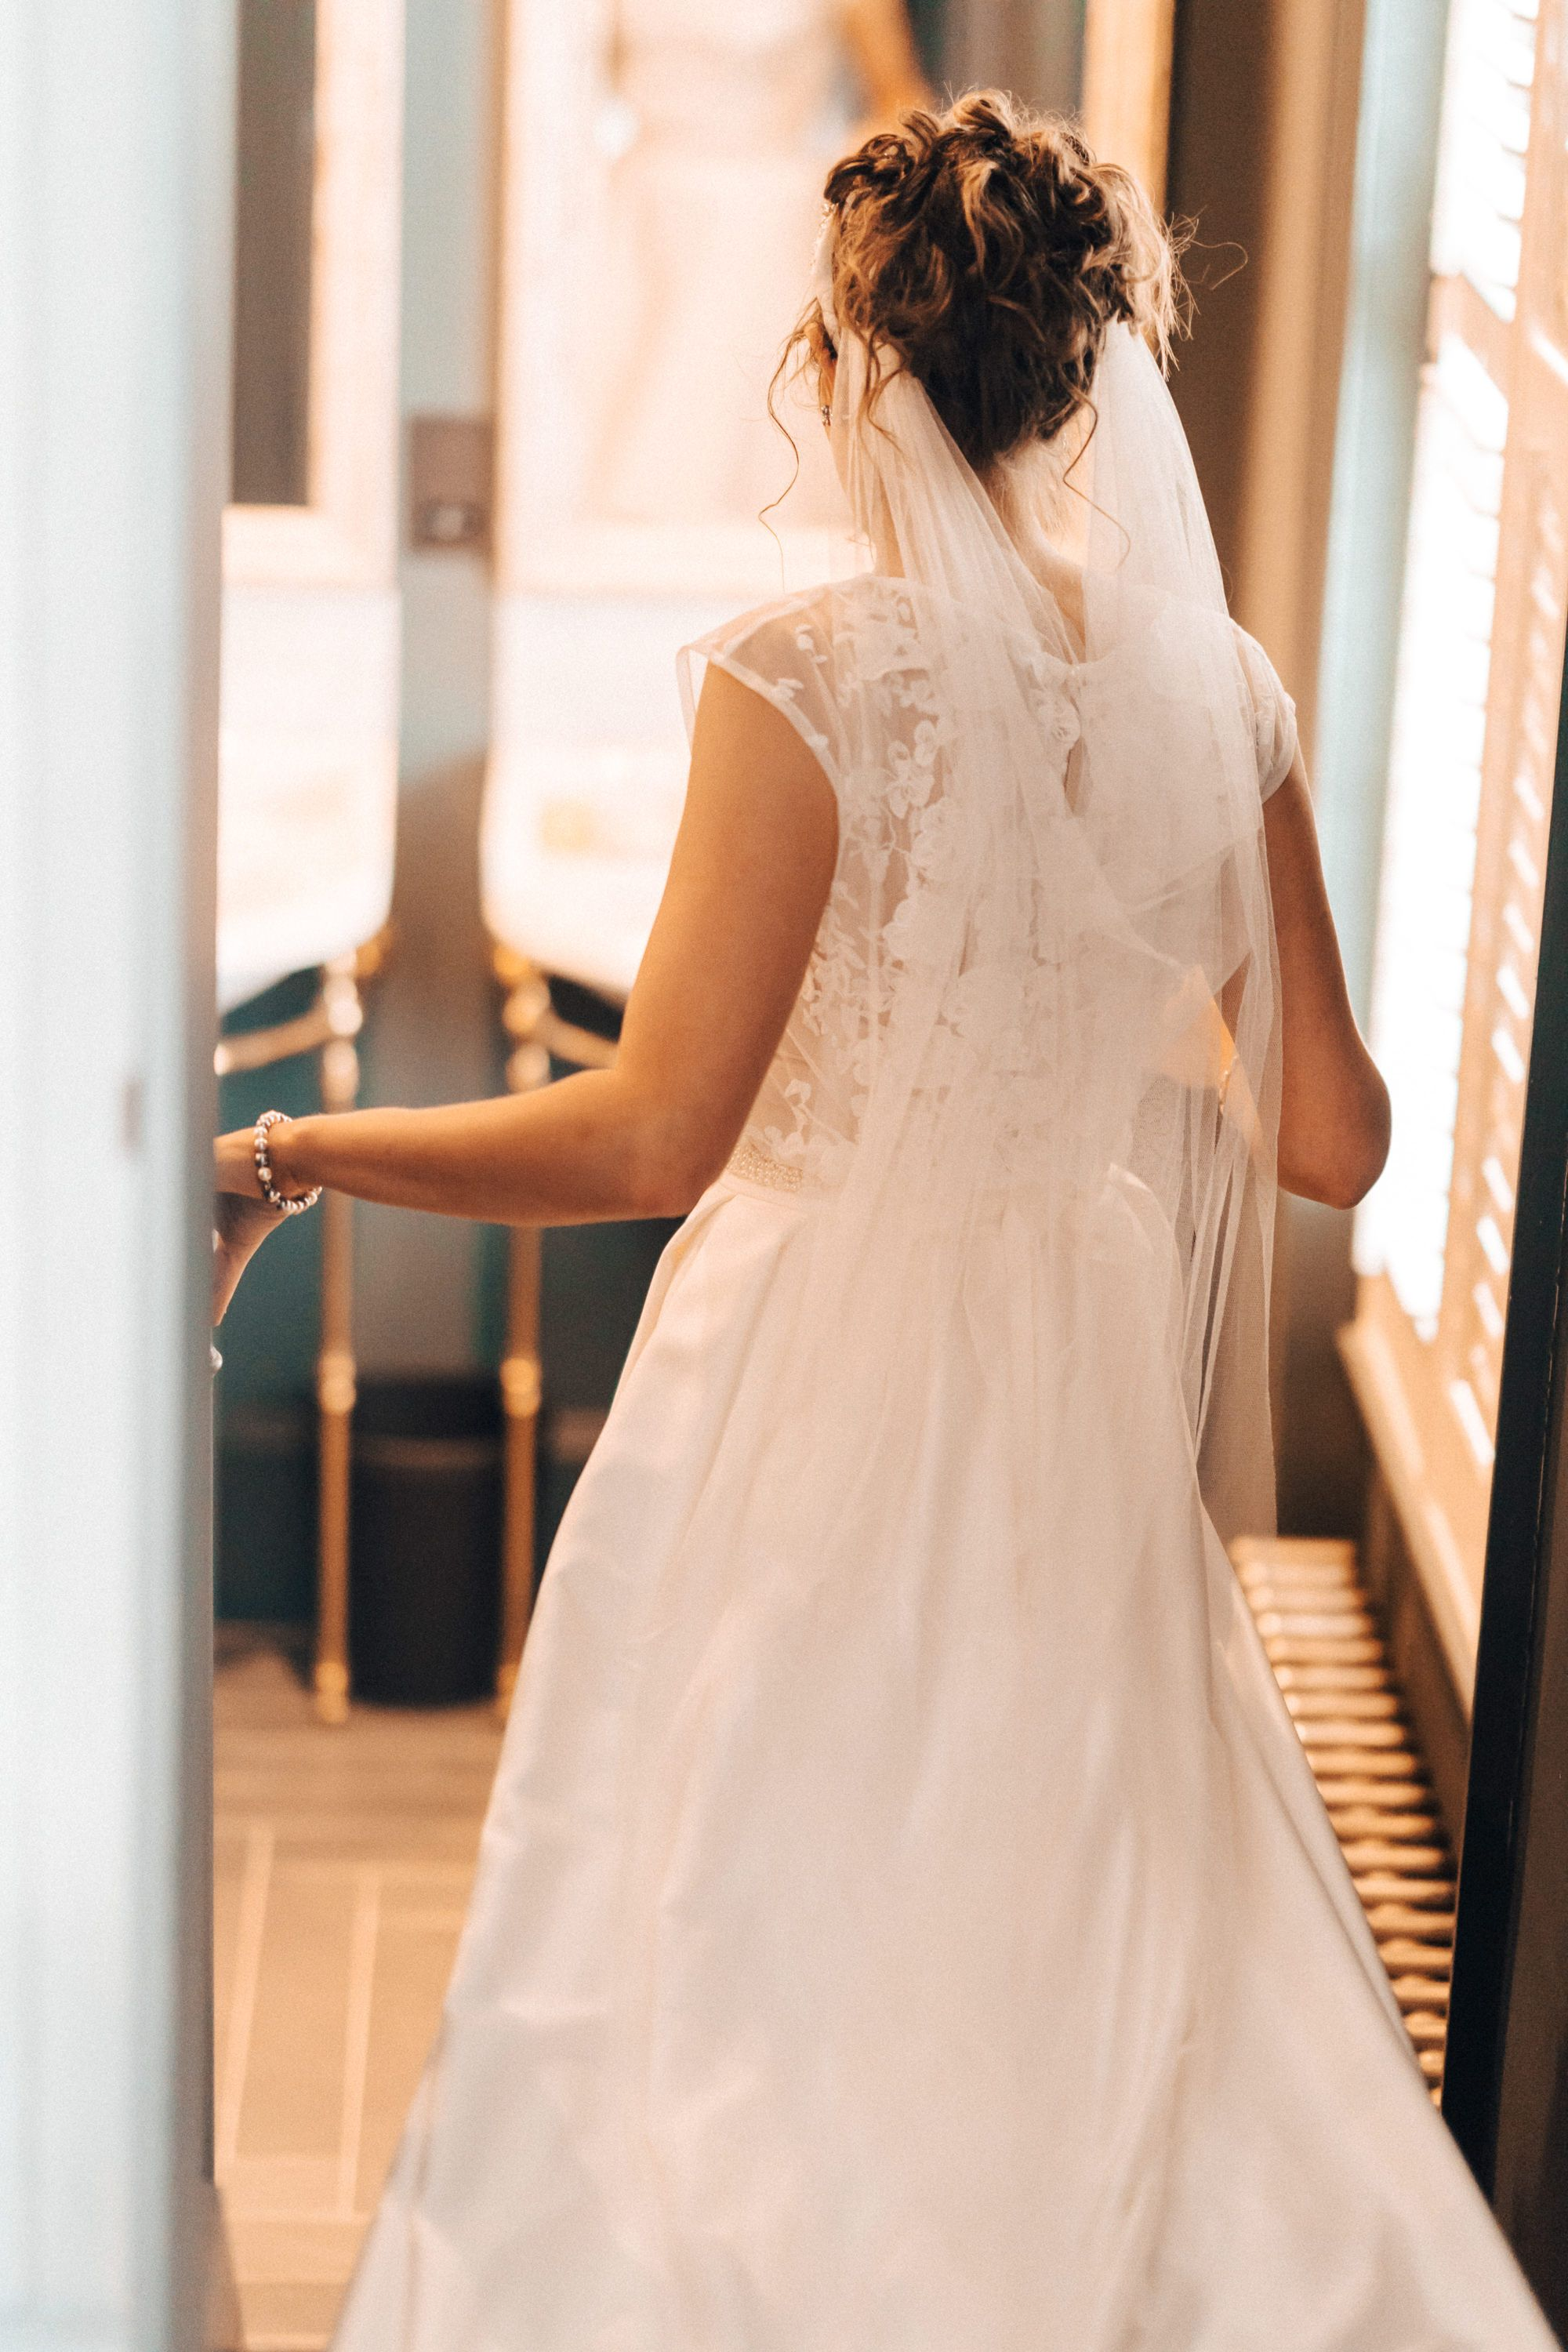 Photograph of the bride dress from behind in bedroom